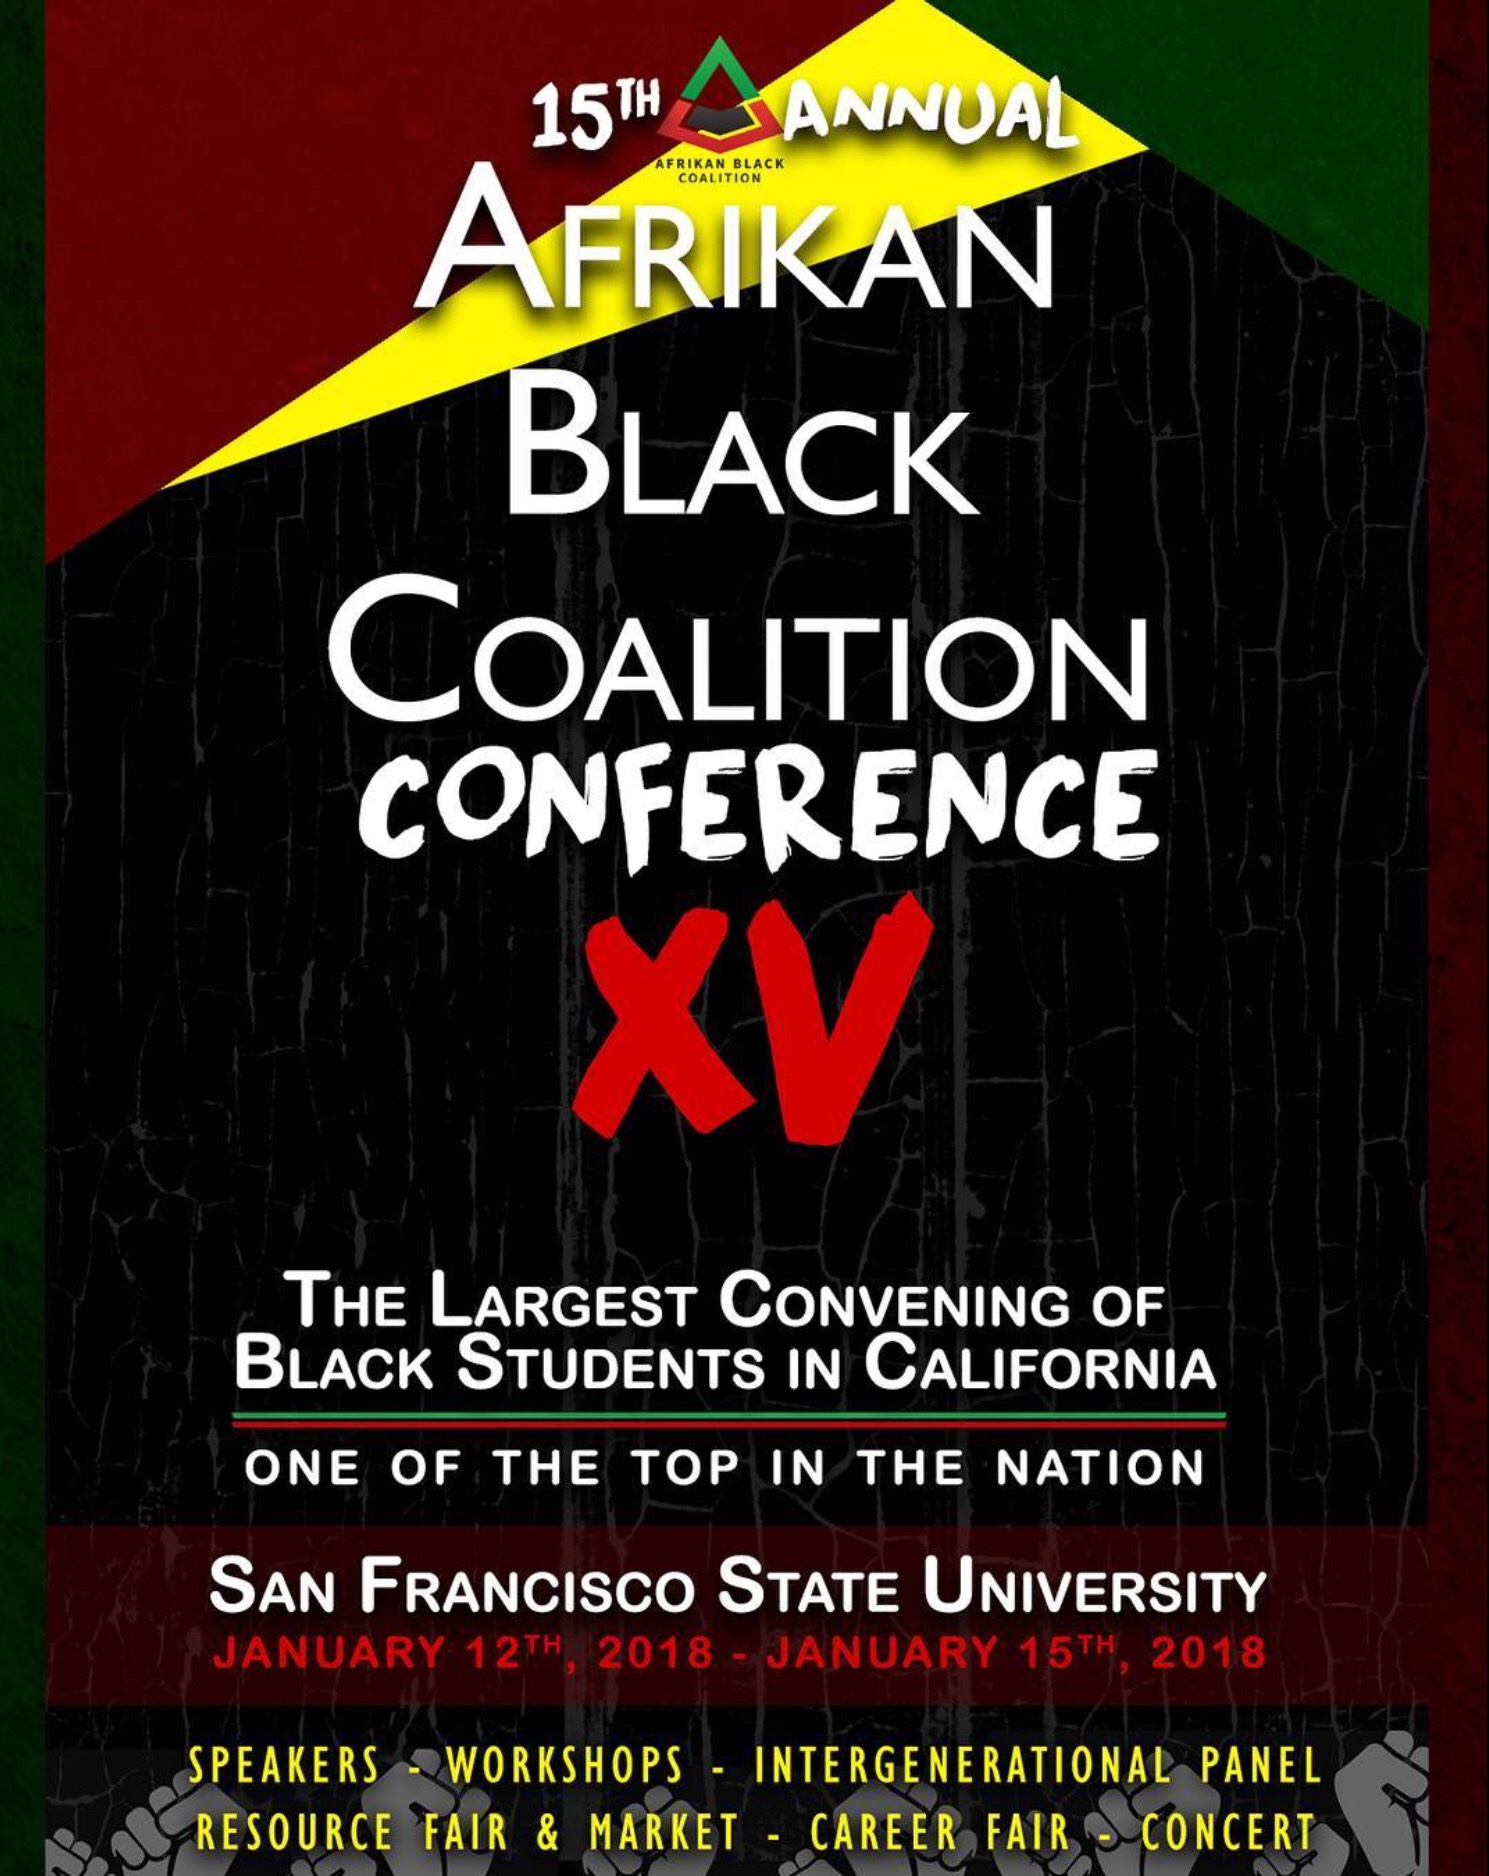 Afrikan Black Coalition Conference